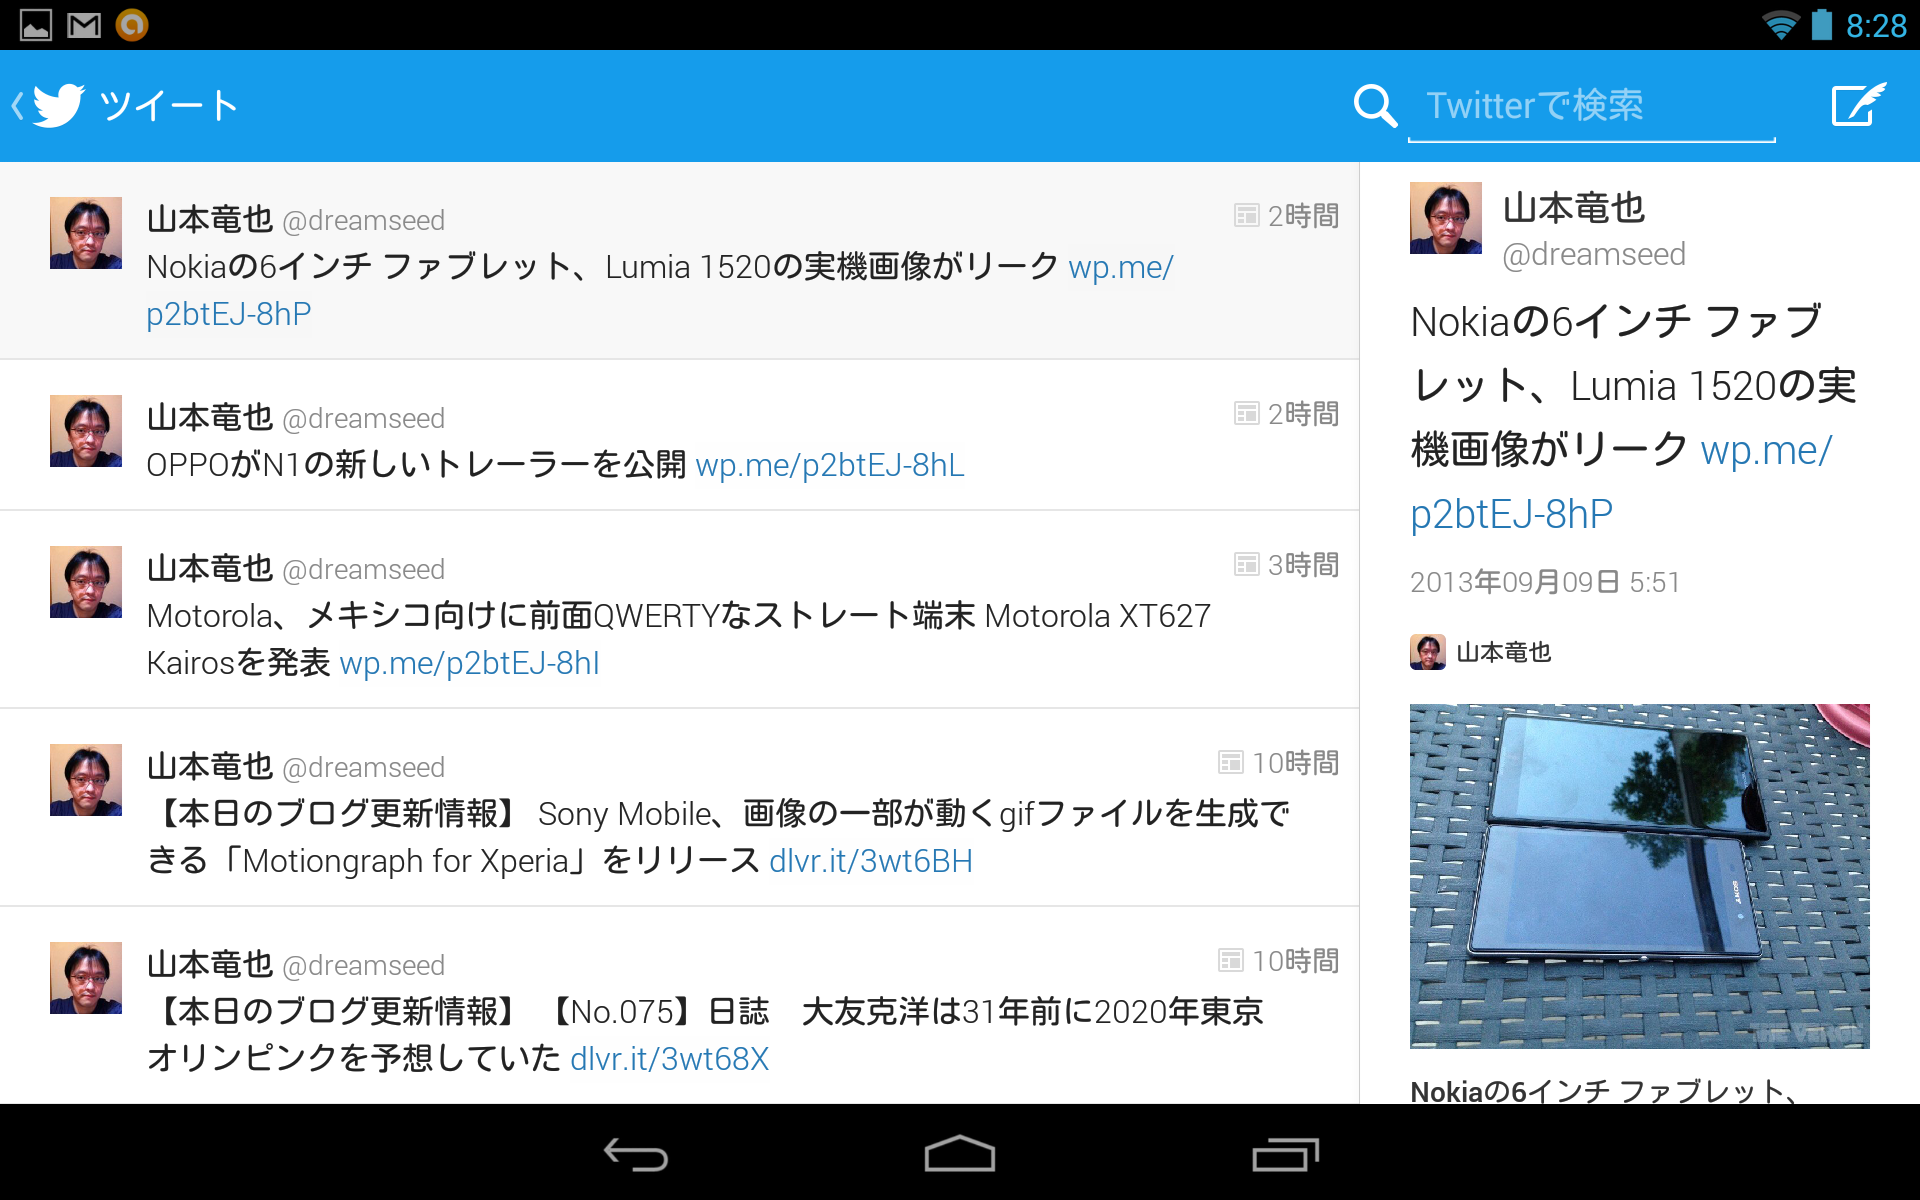 Screenshot_2013-09-09-08-28-50